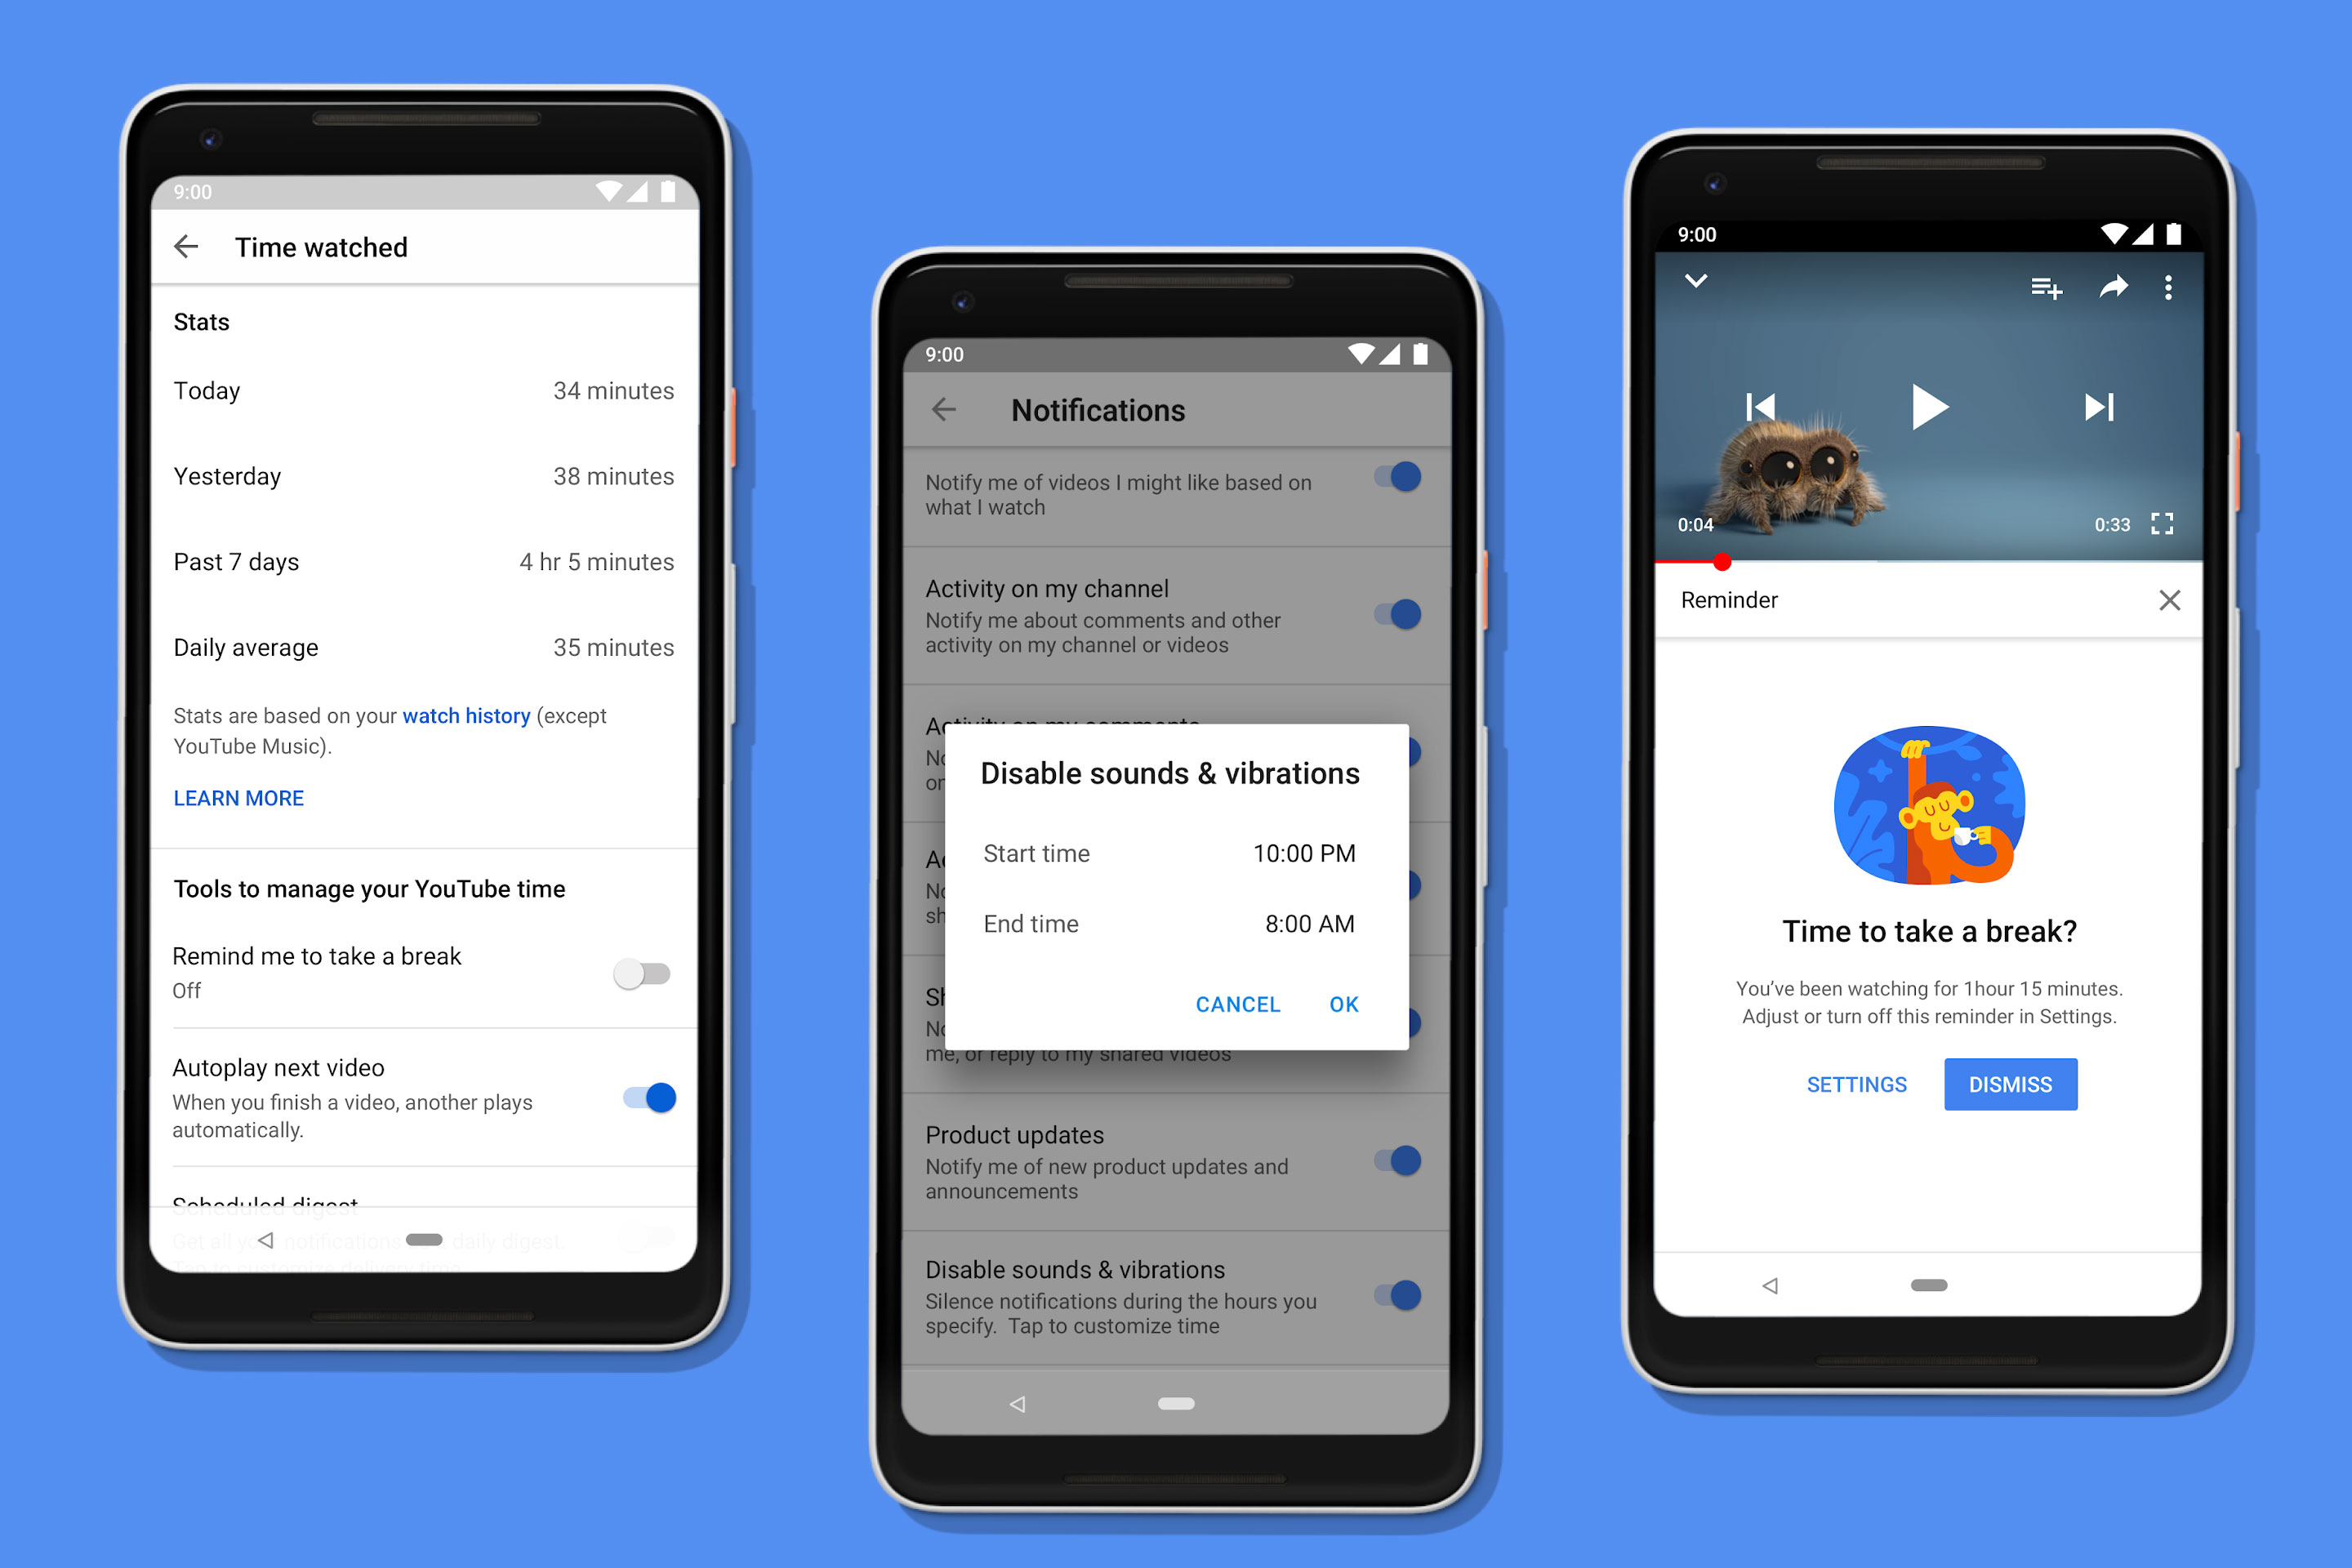 New digital wellbeing tools released by YouTube can track and limit usage and remind users to take breaks.